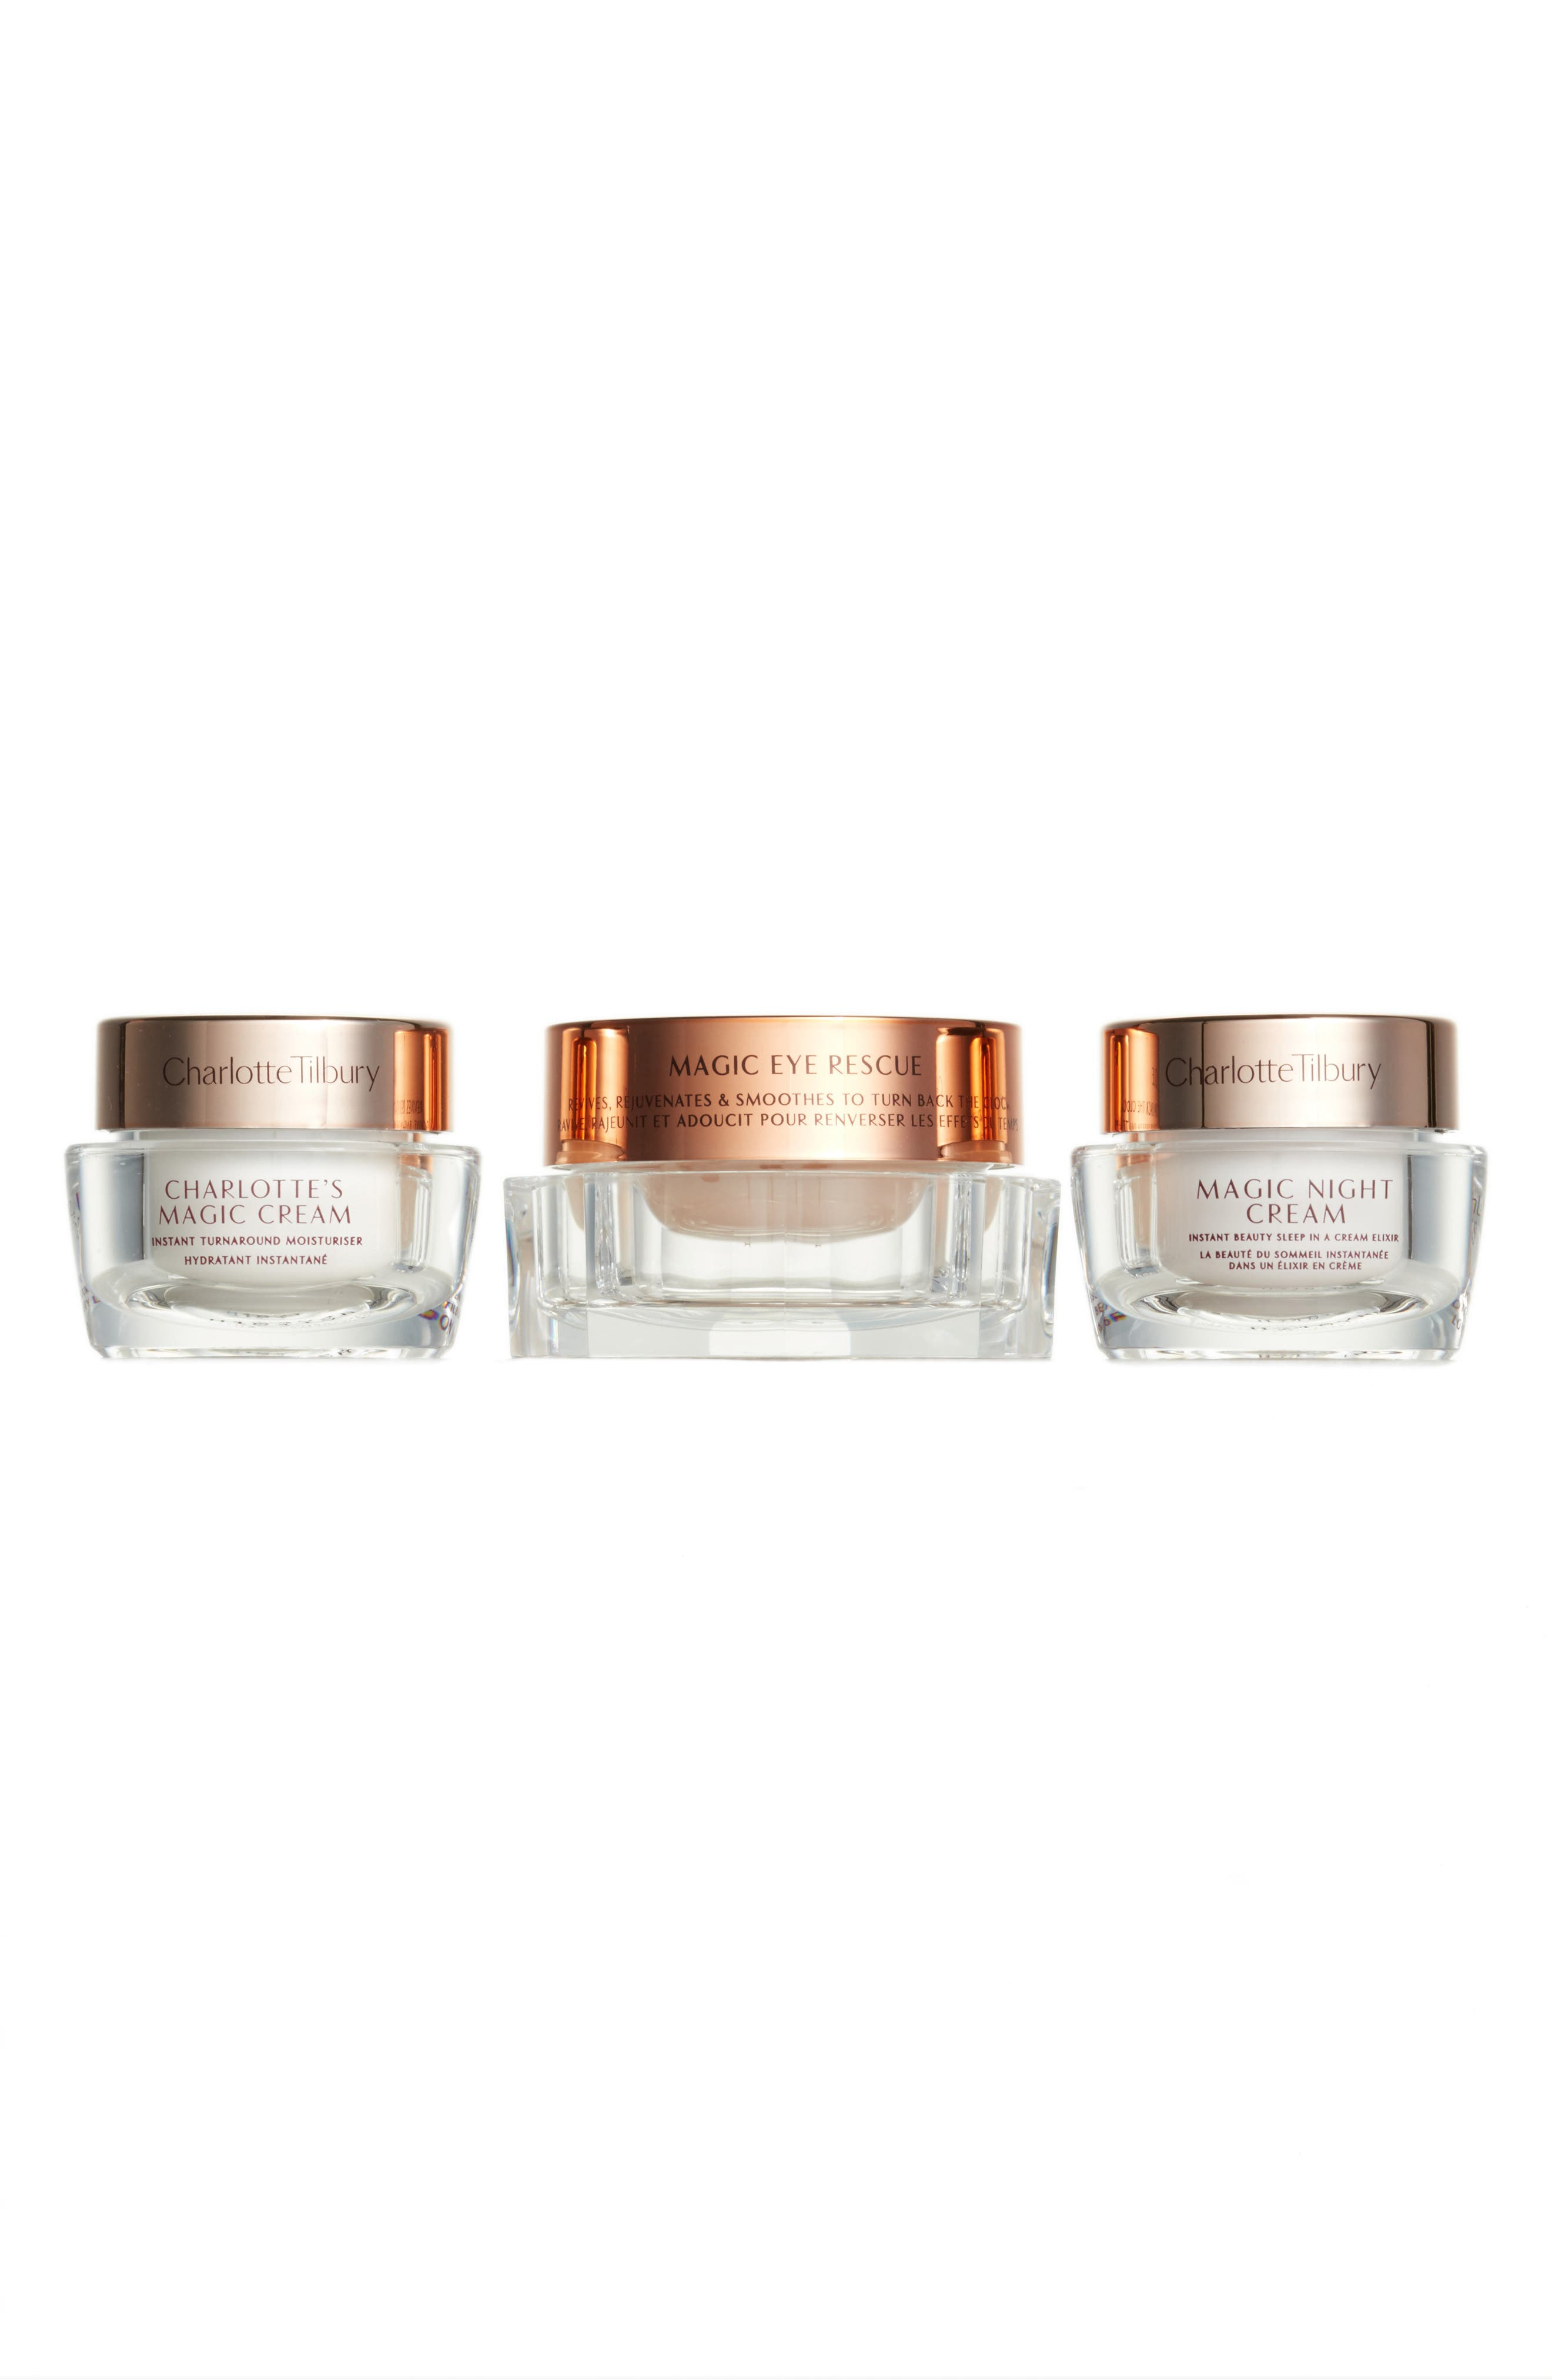 Charlotte Tilbury The Gift of Magic Skin Mini Skin Care Set ($135 Value)